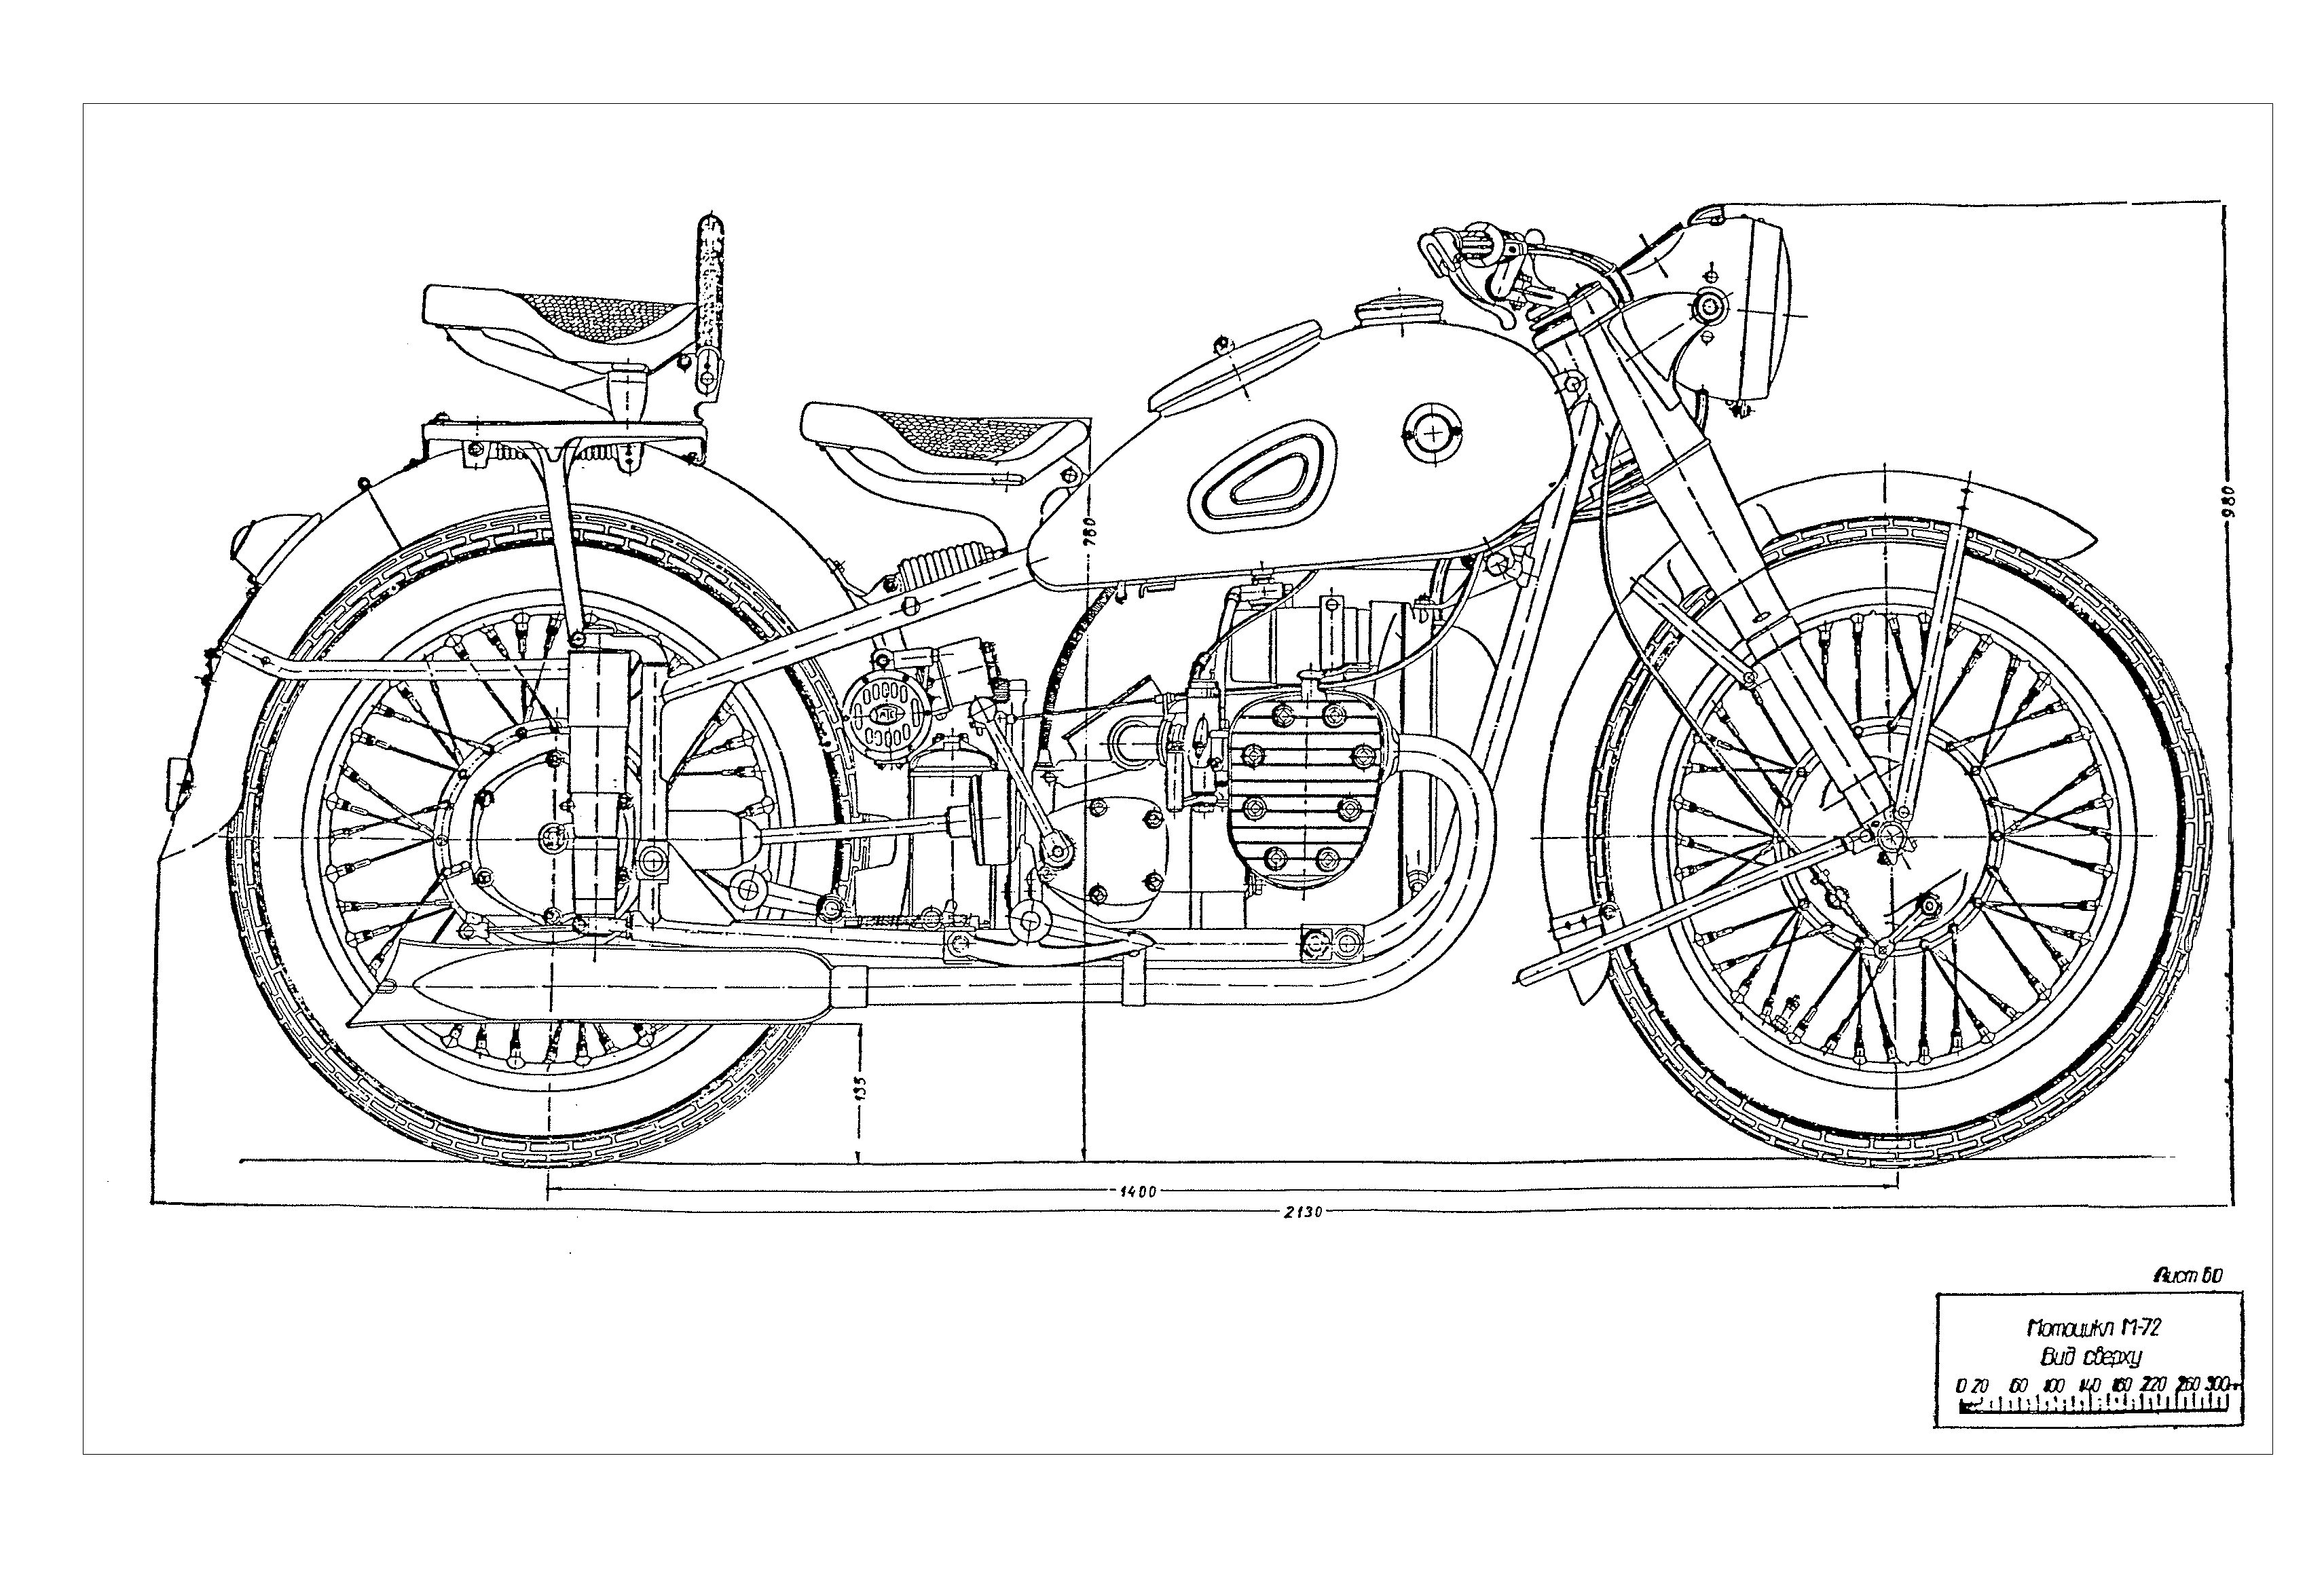 Ural M72 Wiring Diagram